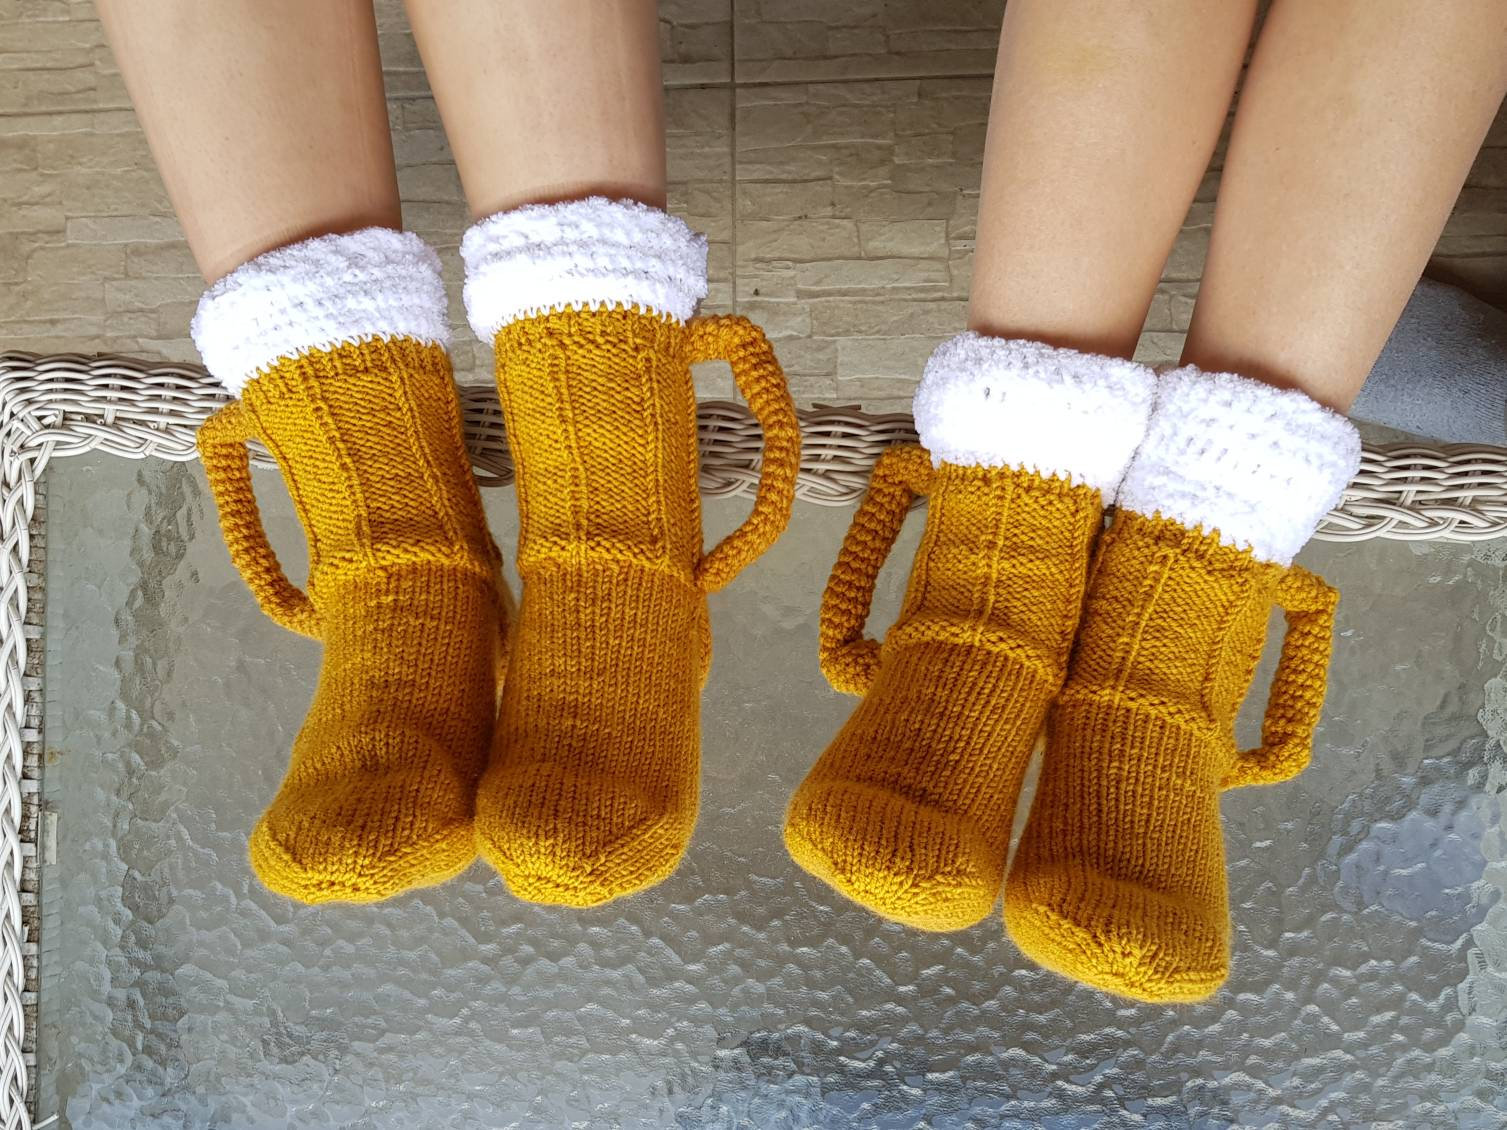 Cozy Hand Knitted Beer Mug Socks With Handles